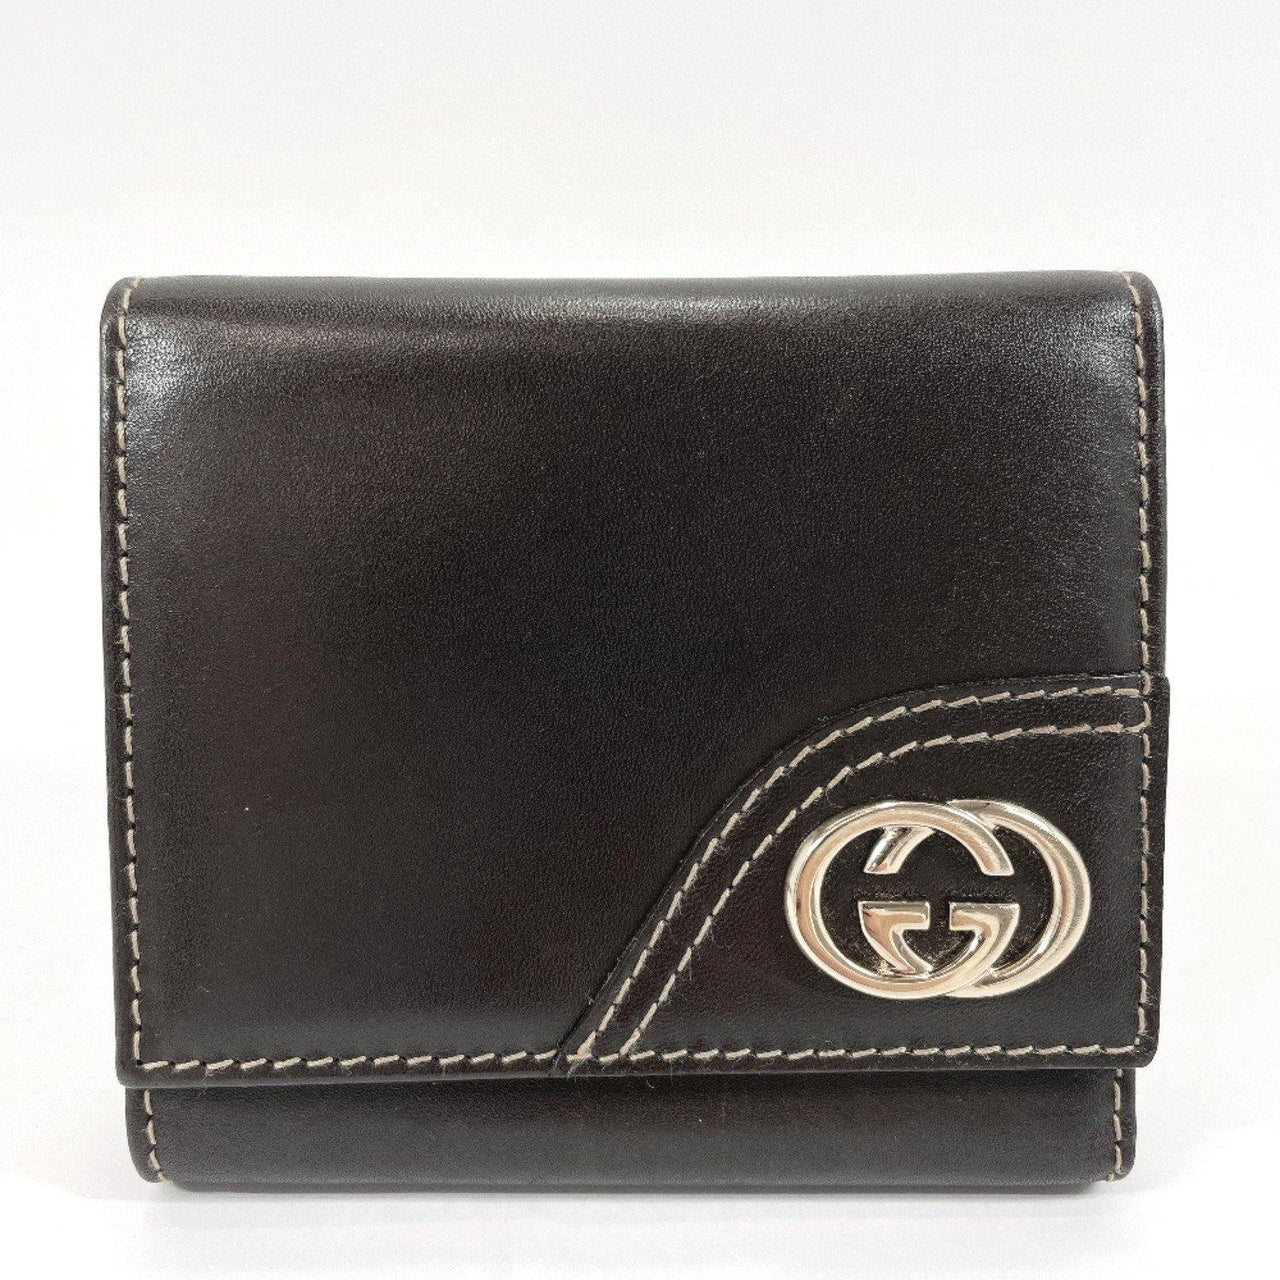 GUCCI Tri-fold wallet 181597 leather Dark brown unisex Used - JP-BRANDS.com